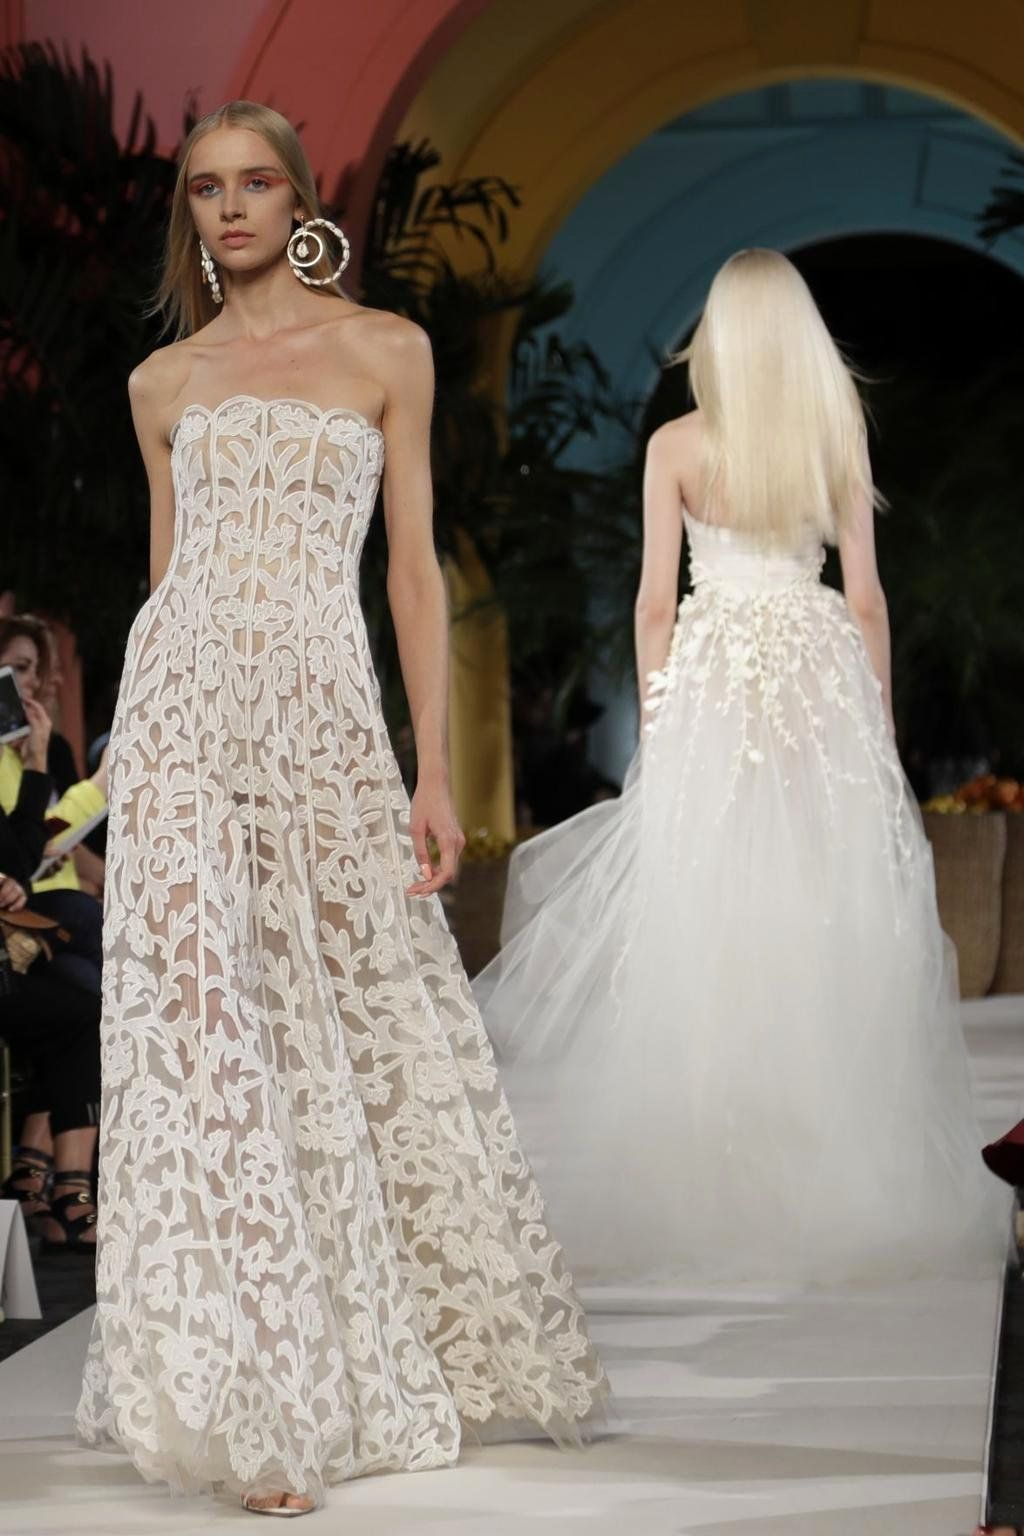 Design My Wedding Dress Online For Free Luxury Dominican Vibes And A Youthful Feel At Oscar D In 2020 Online Wedding Dress Designer Wedding Dresses Clean Wedding Dress